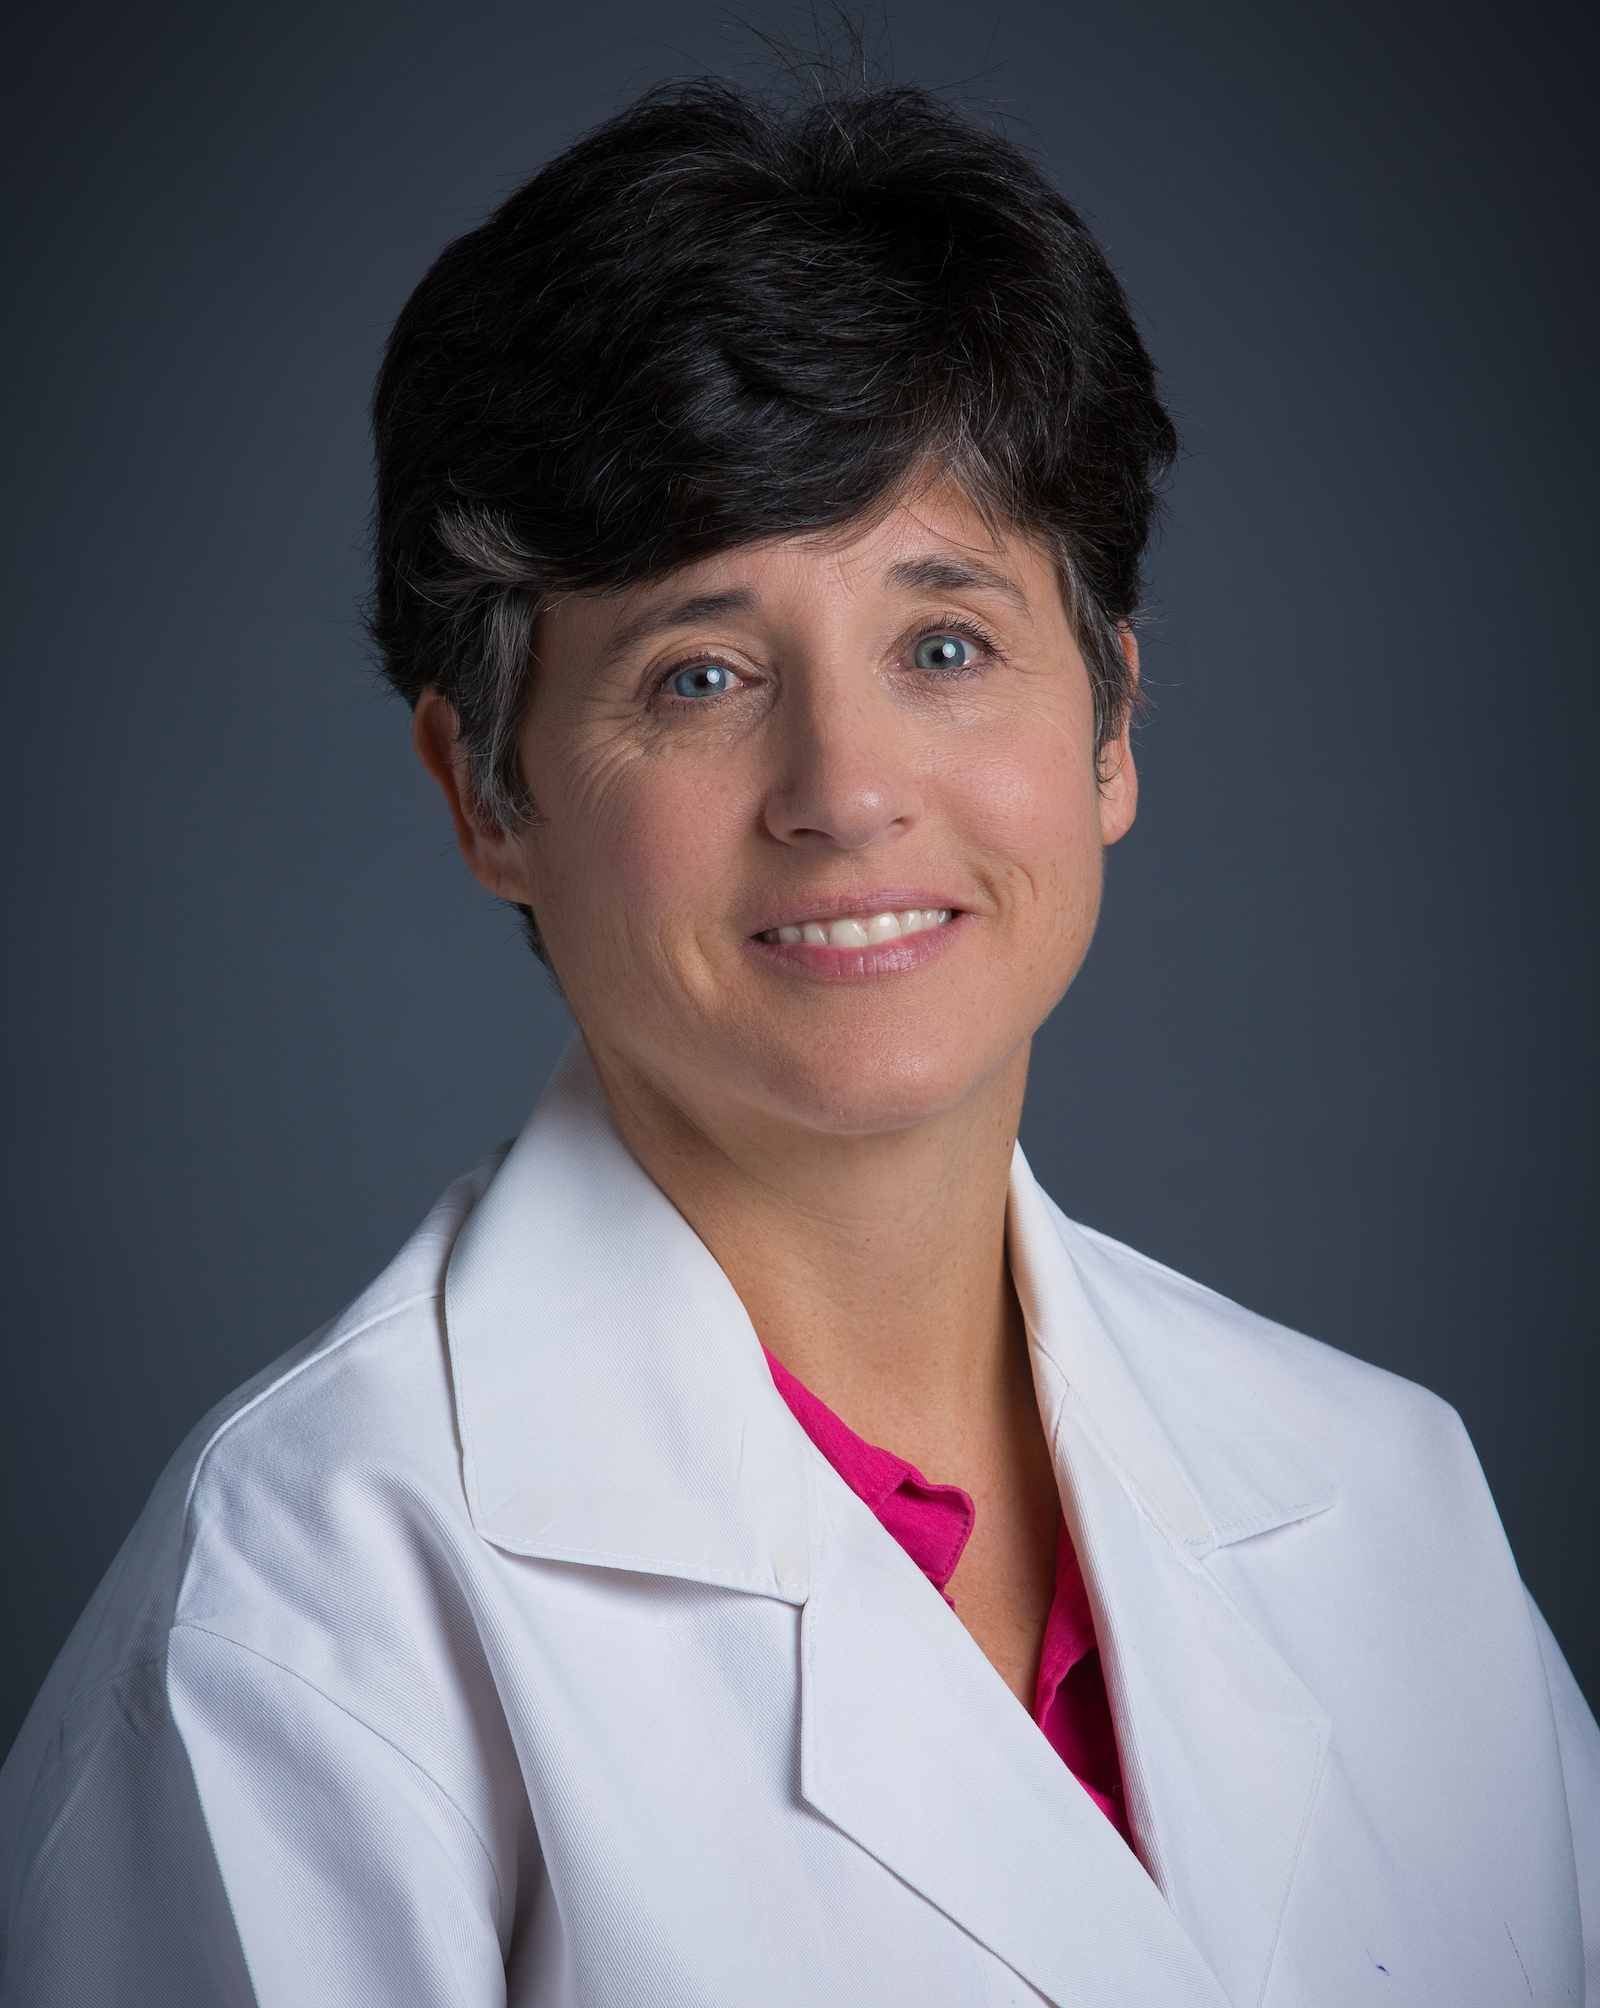 Linda B. Thompson, MD